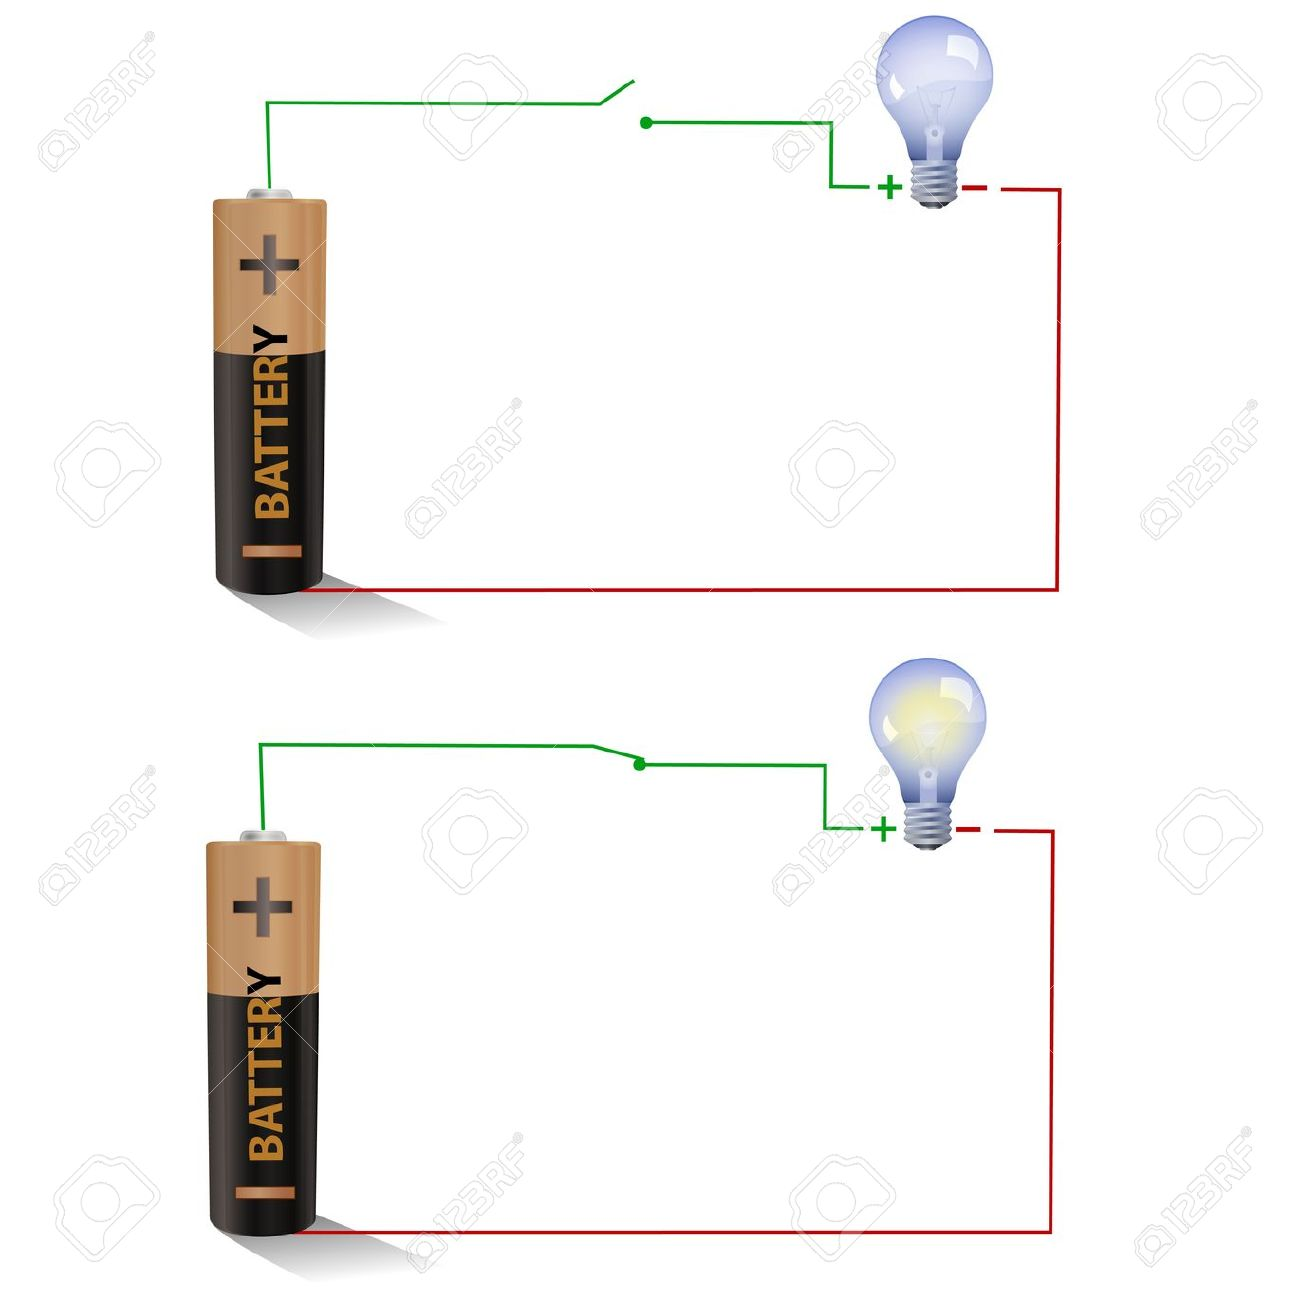 Electric Circuit Showing Open And Closed Switches Using A Light Bulb And  Battery Stock Photo